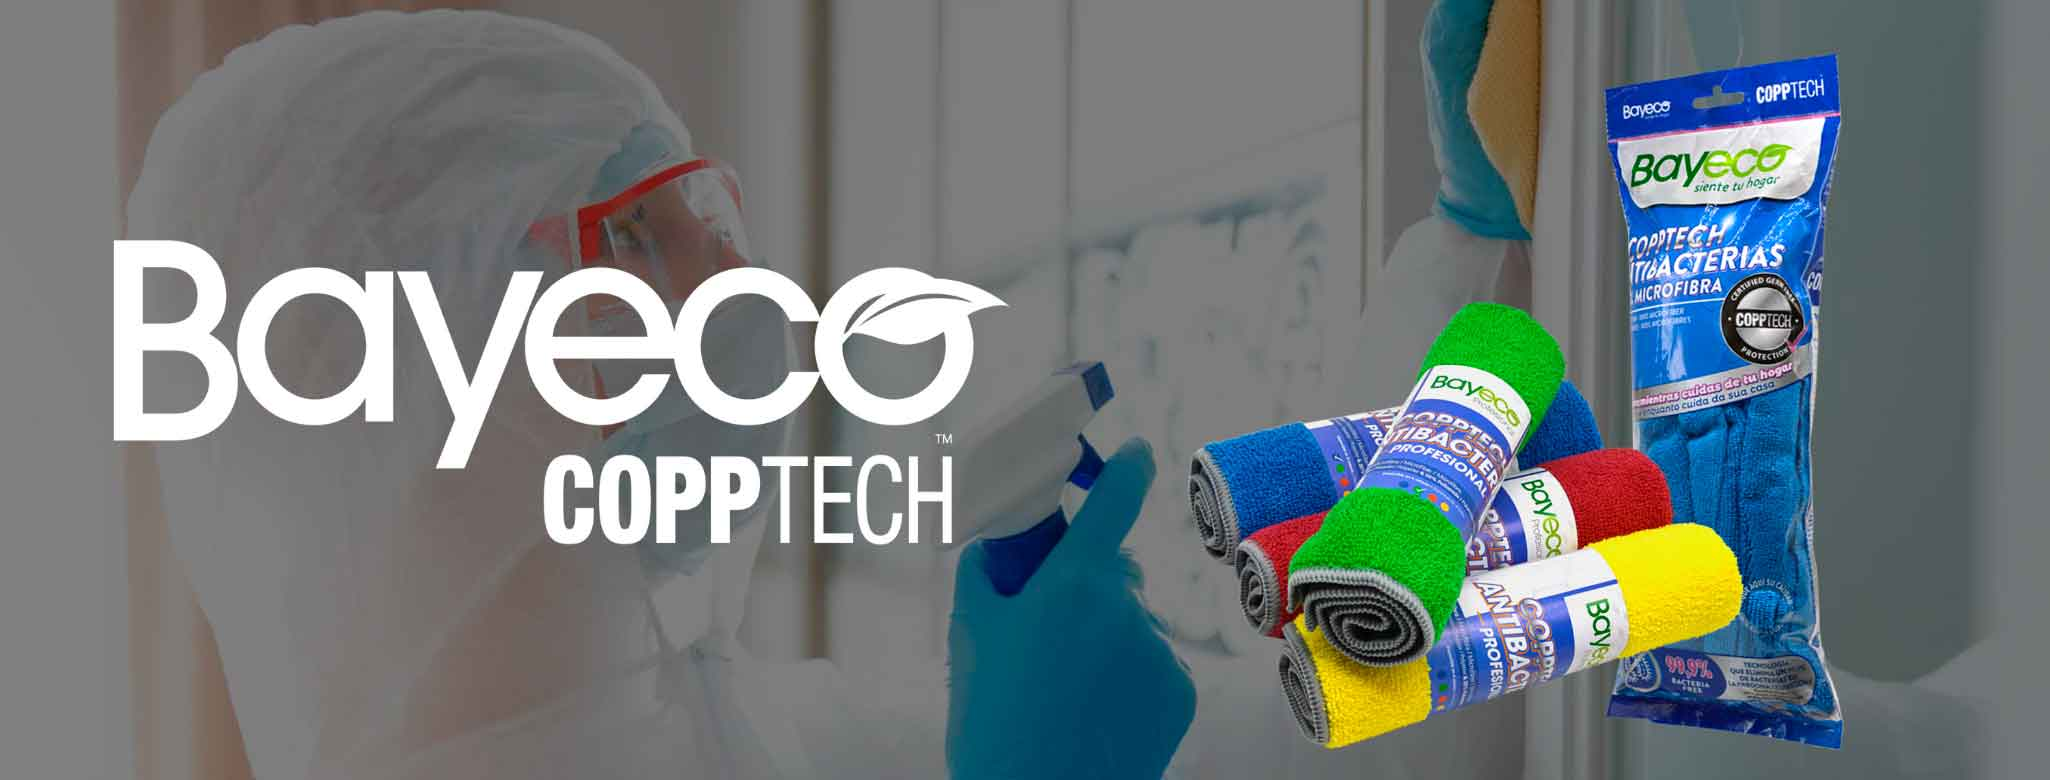 bayeco copptech profesional